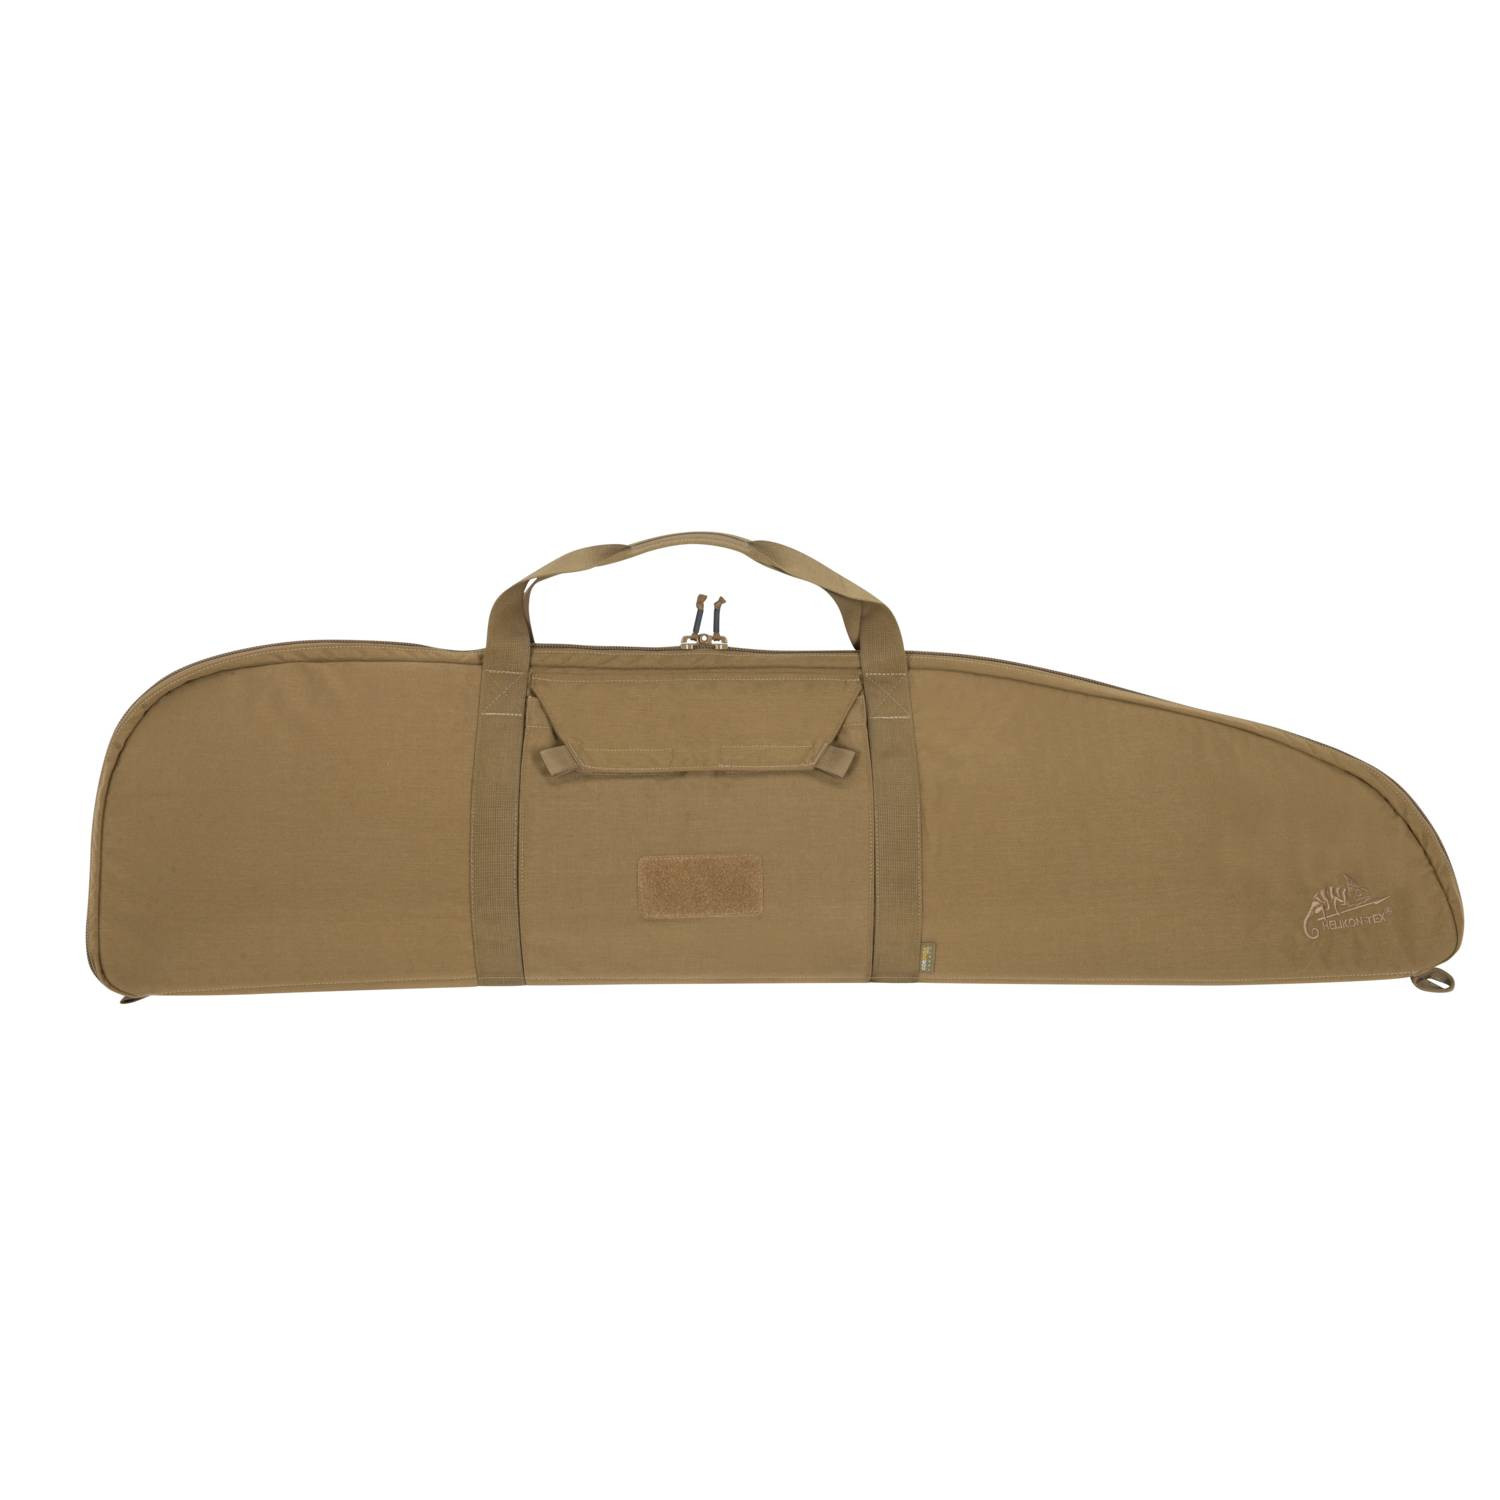 Pokrowiec Basic Rifle Case Detal 2